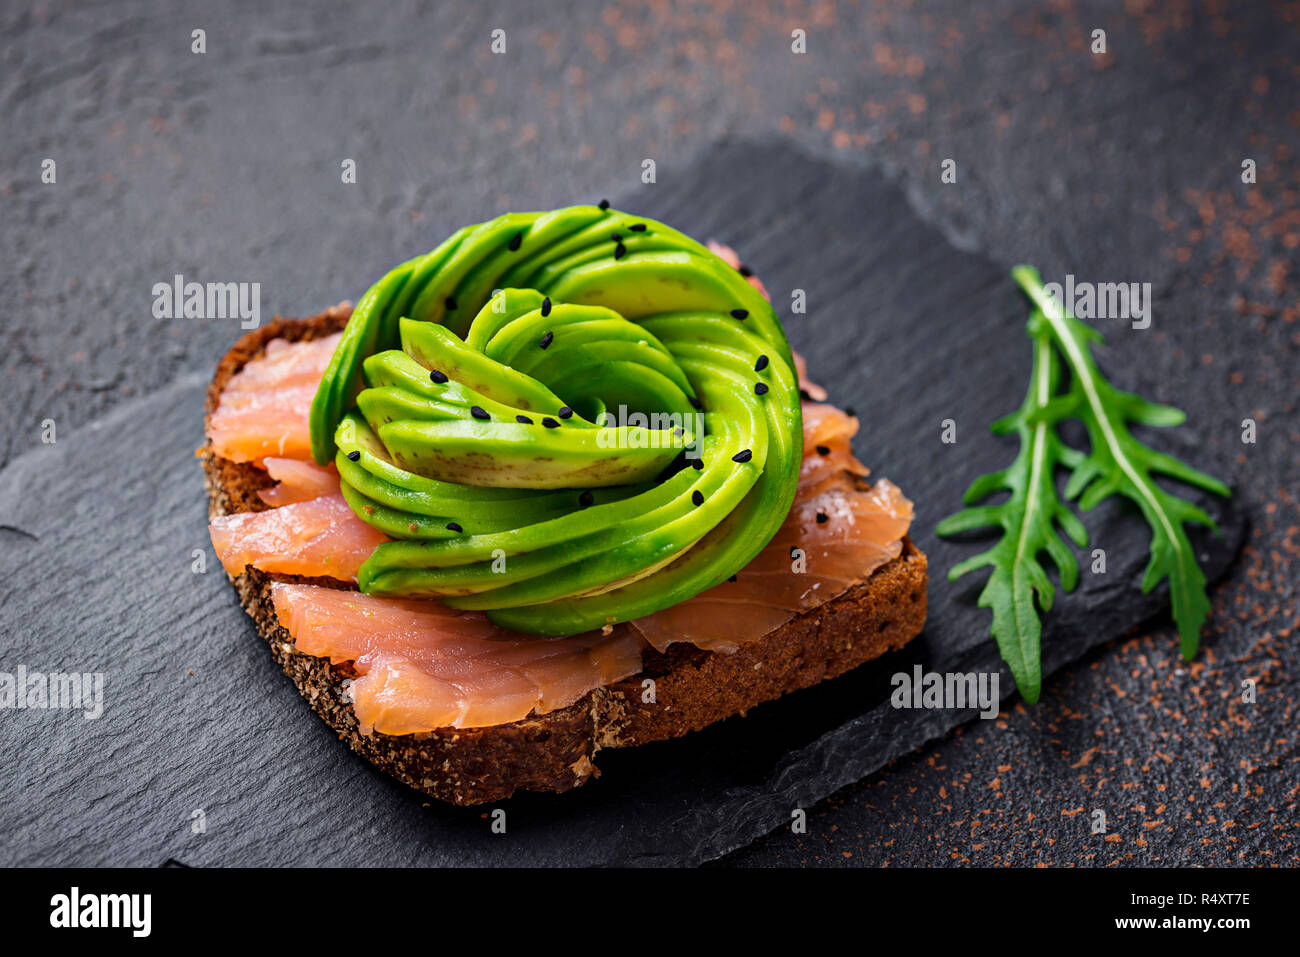 Healthy toasts with salmon and avocado rose on rue bread - Stock Image